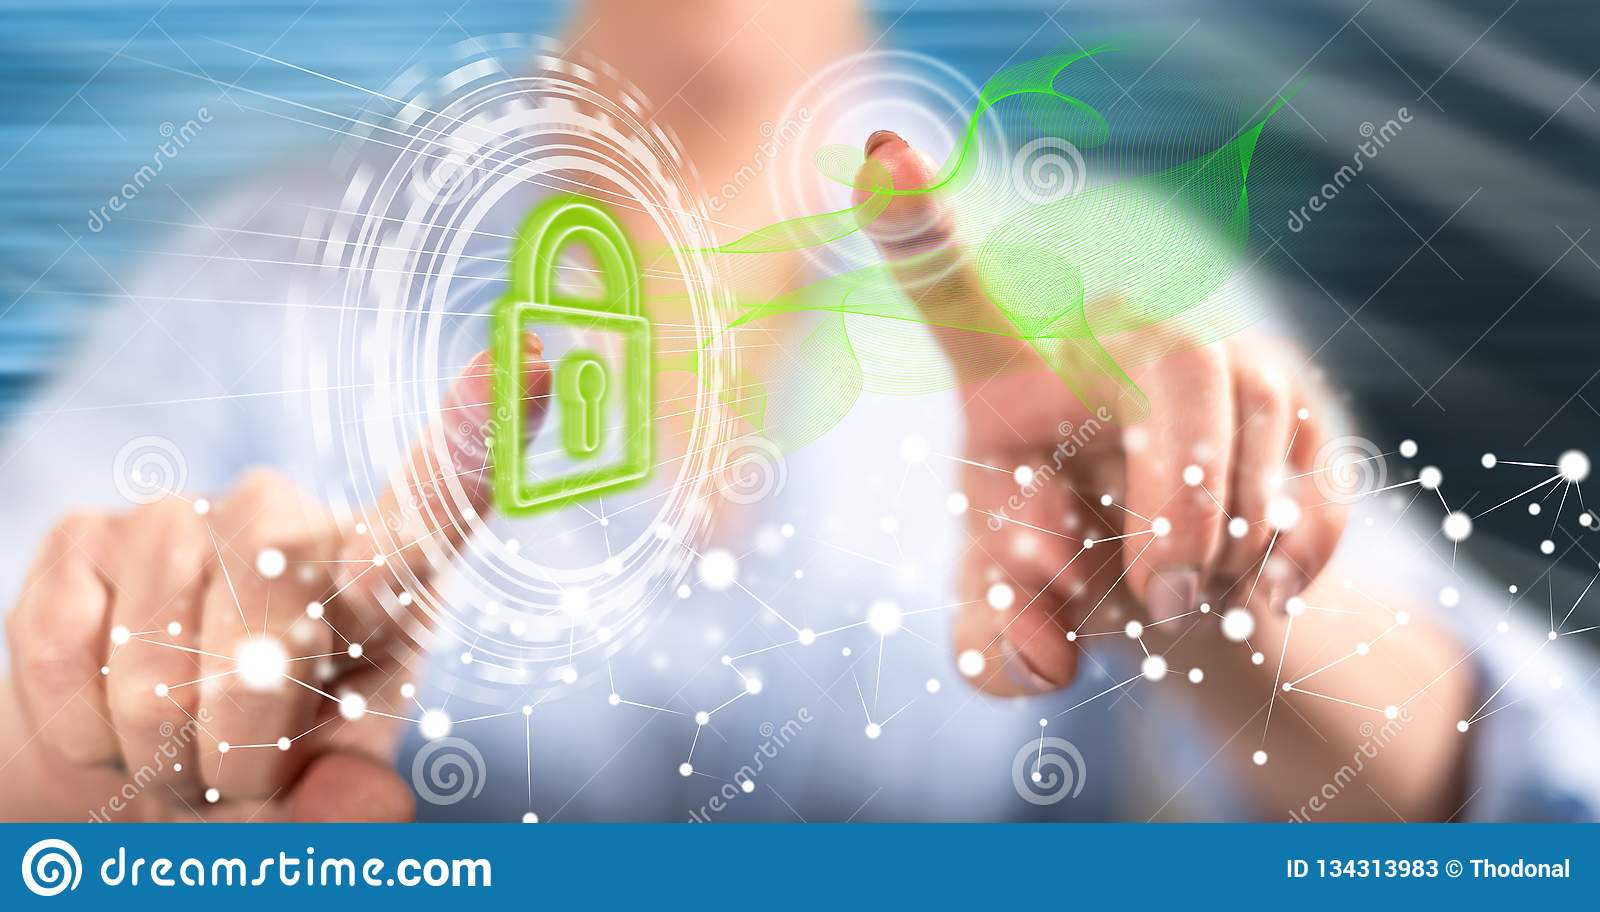 Woman touching a digital security concept